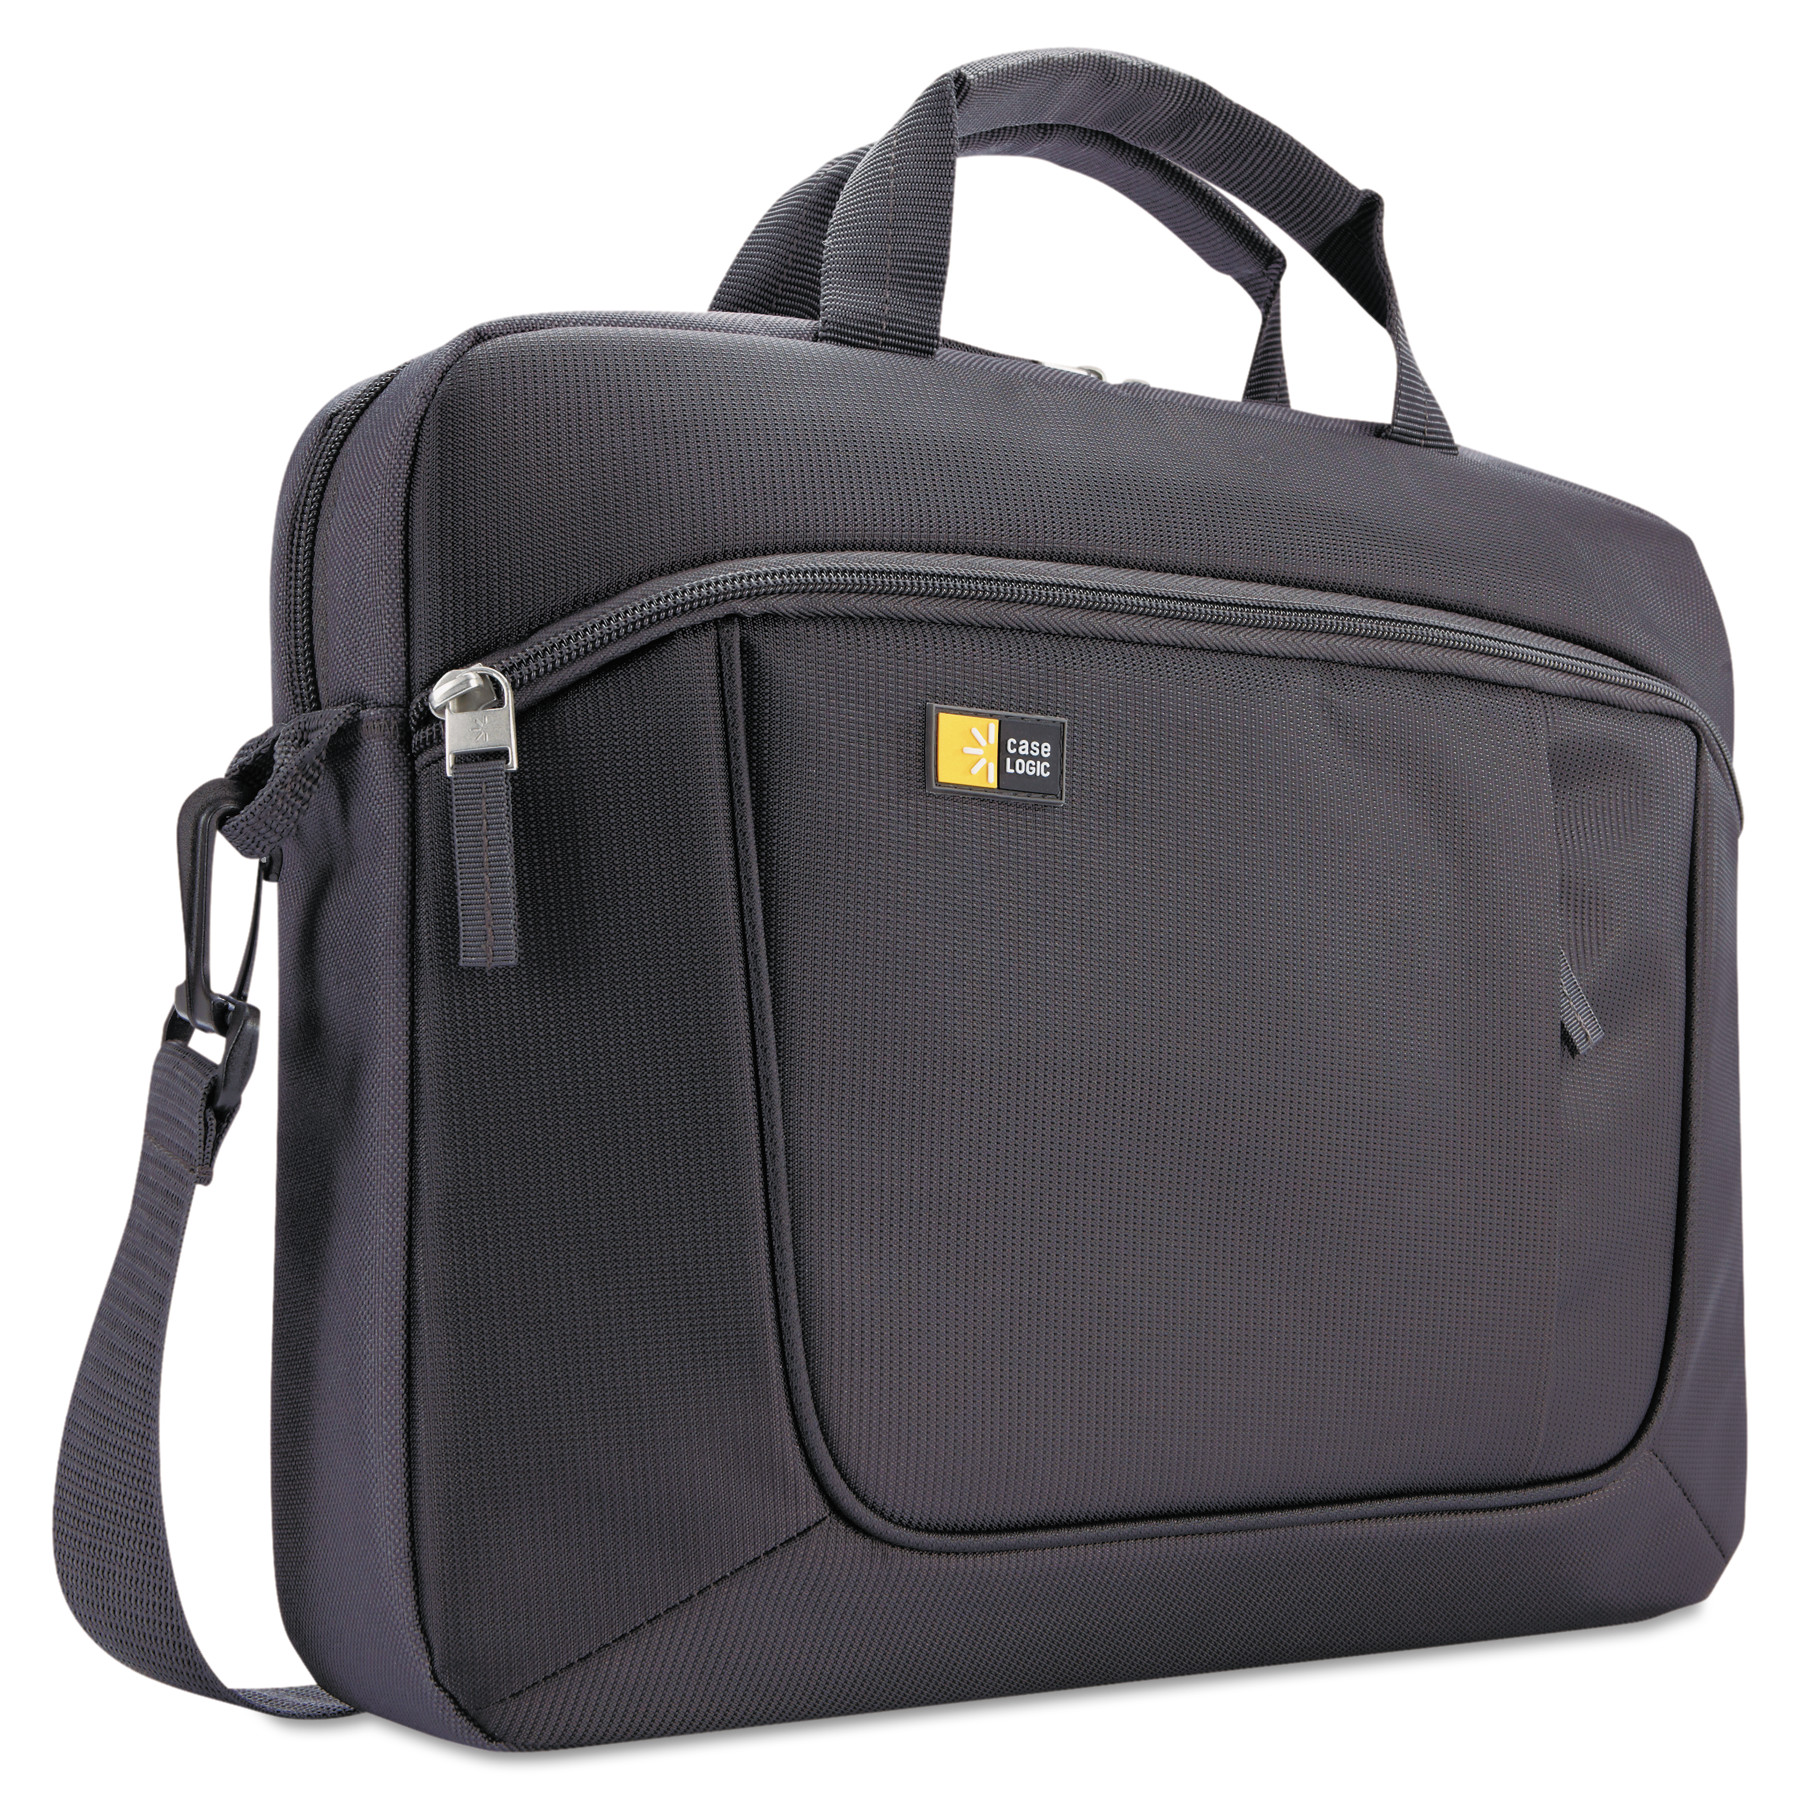 "Case Logic Laptop and Tablet Slim Case, 15.6"", 16 1/2 x 3 1/5 x 12 4/5, Dark Gray"